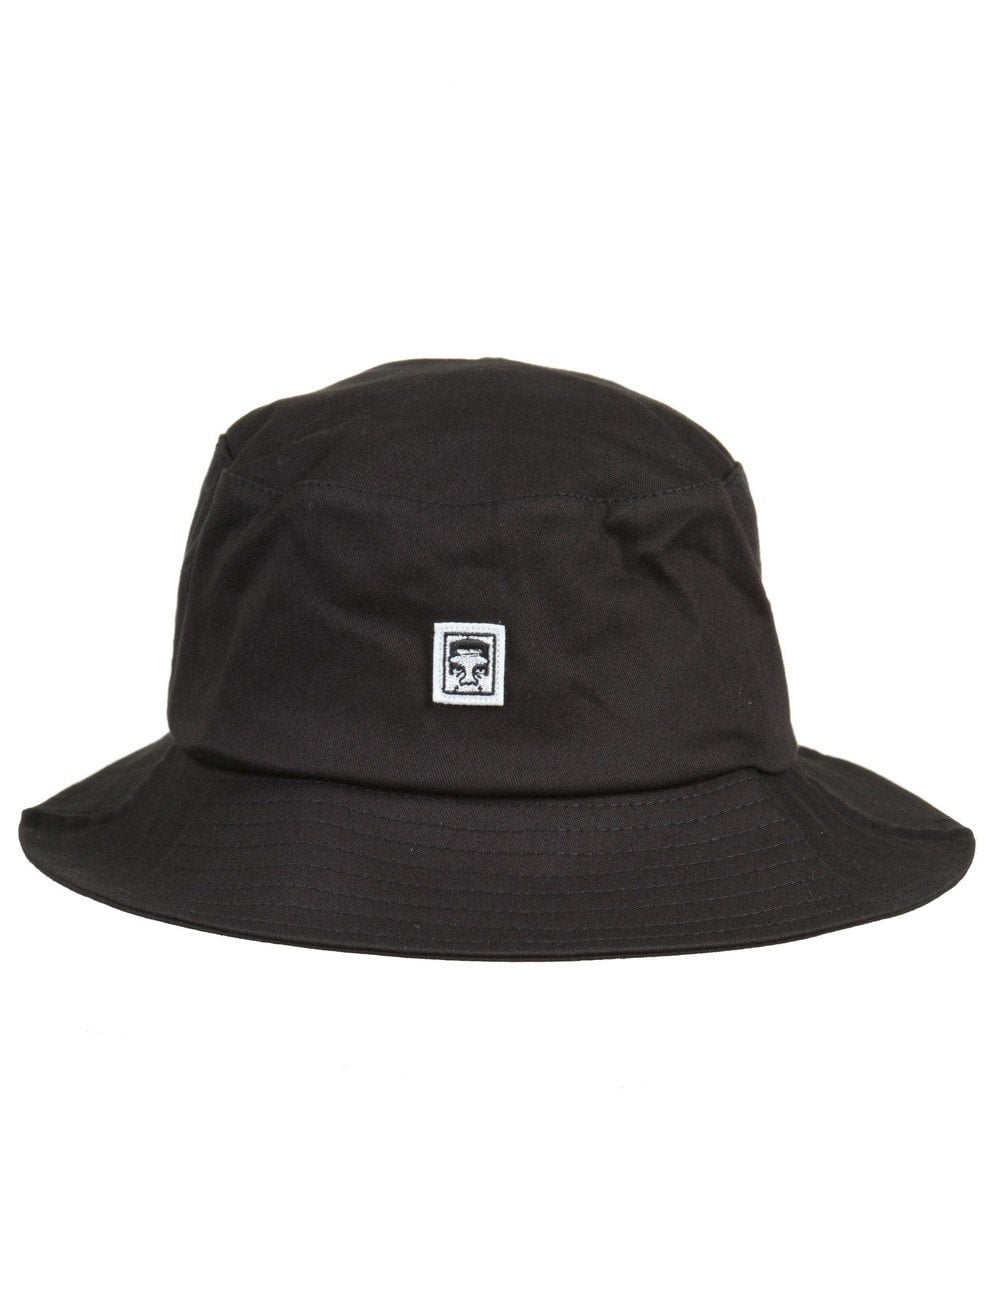 d63c2f39 Obey Clothing Eighty-Nine Bucket Hat - Black - Accessories from Fat ...